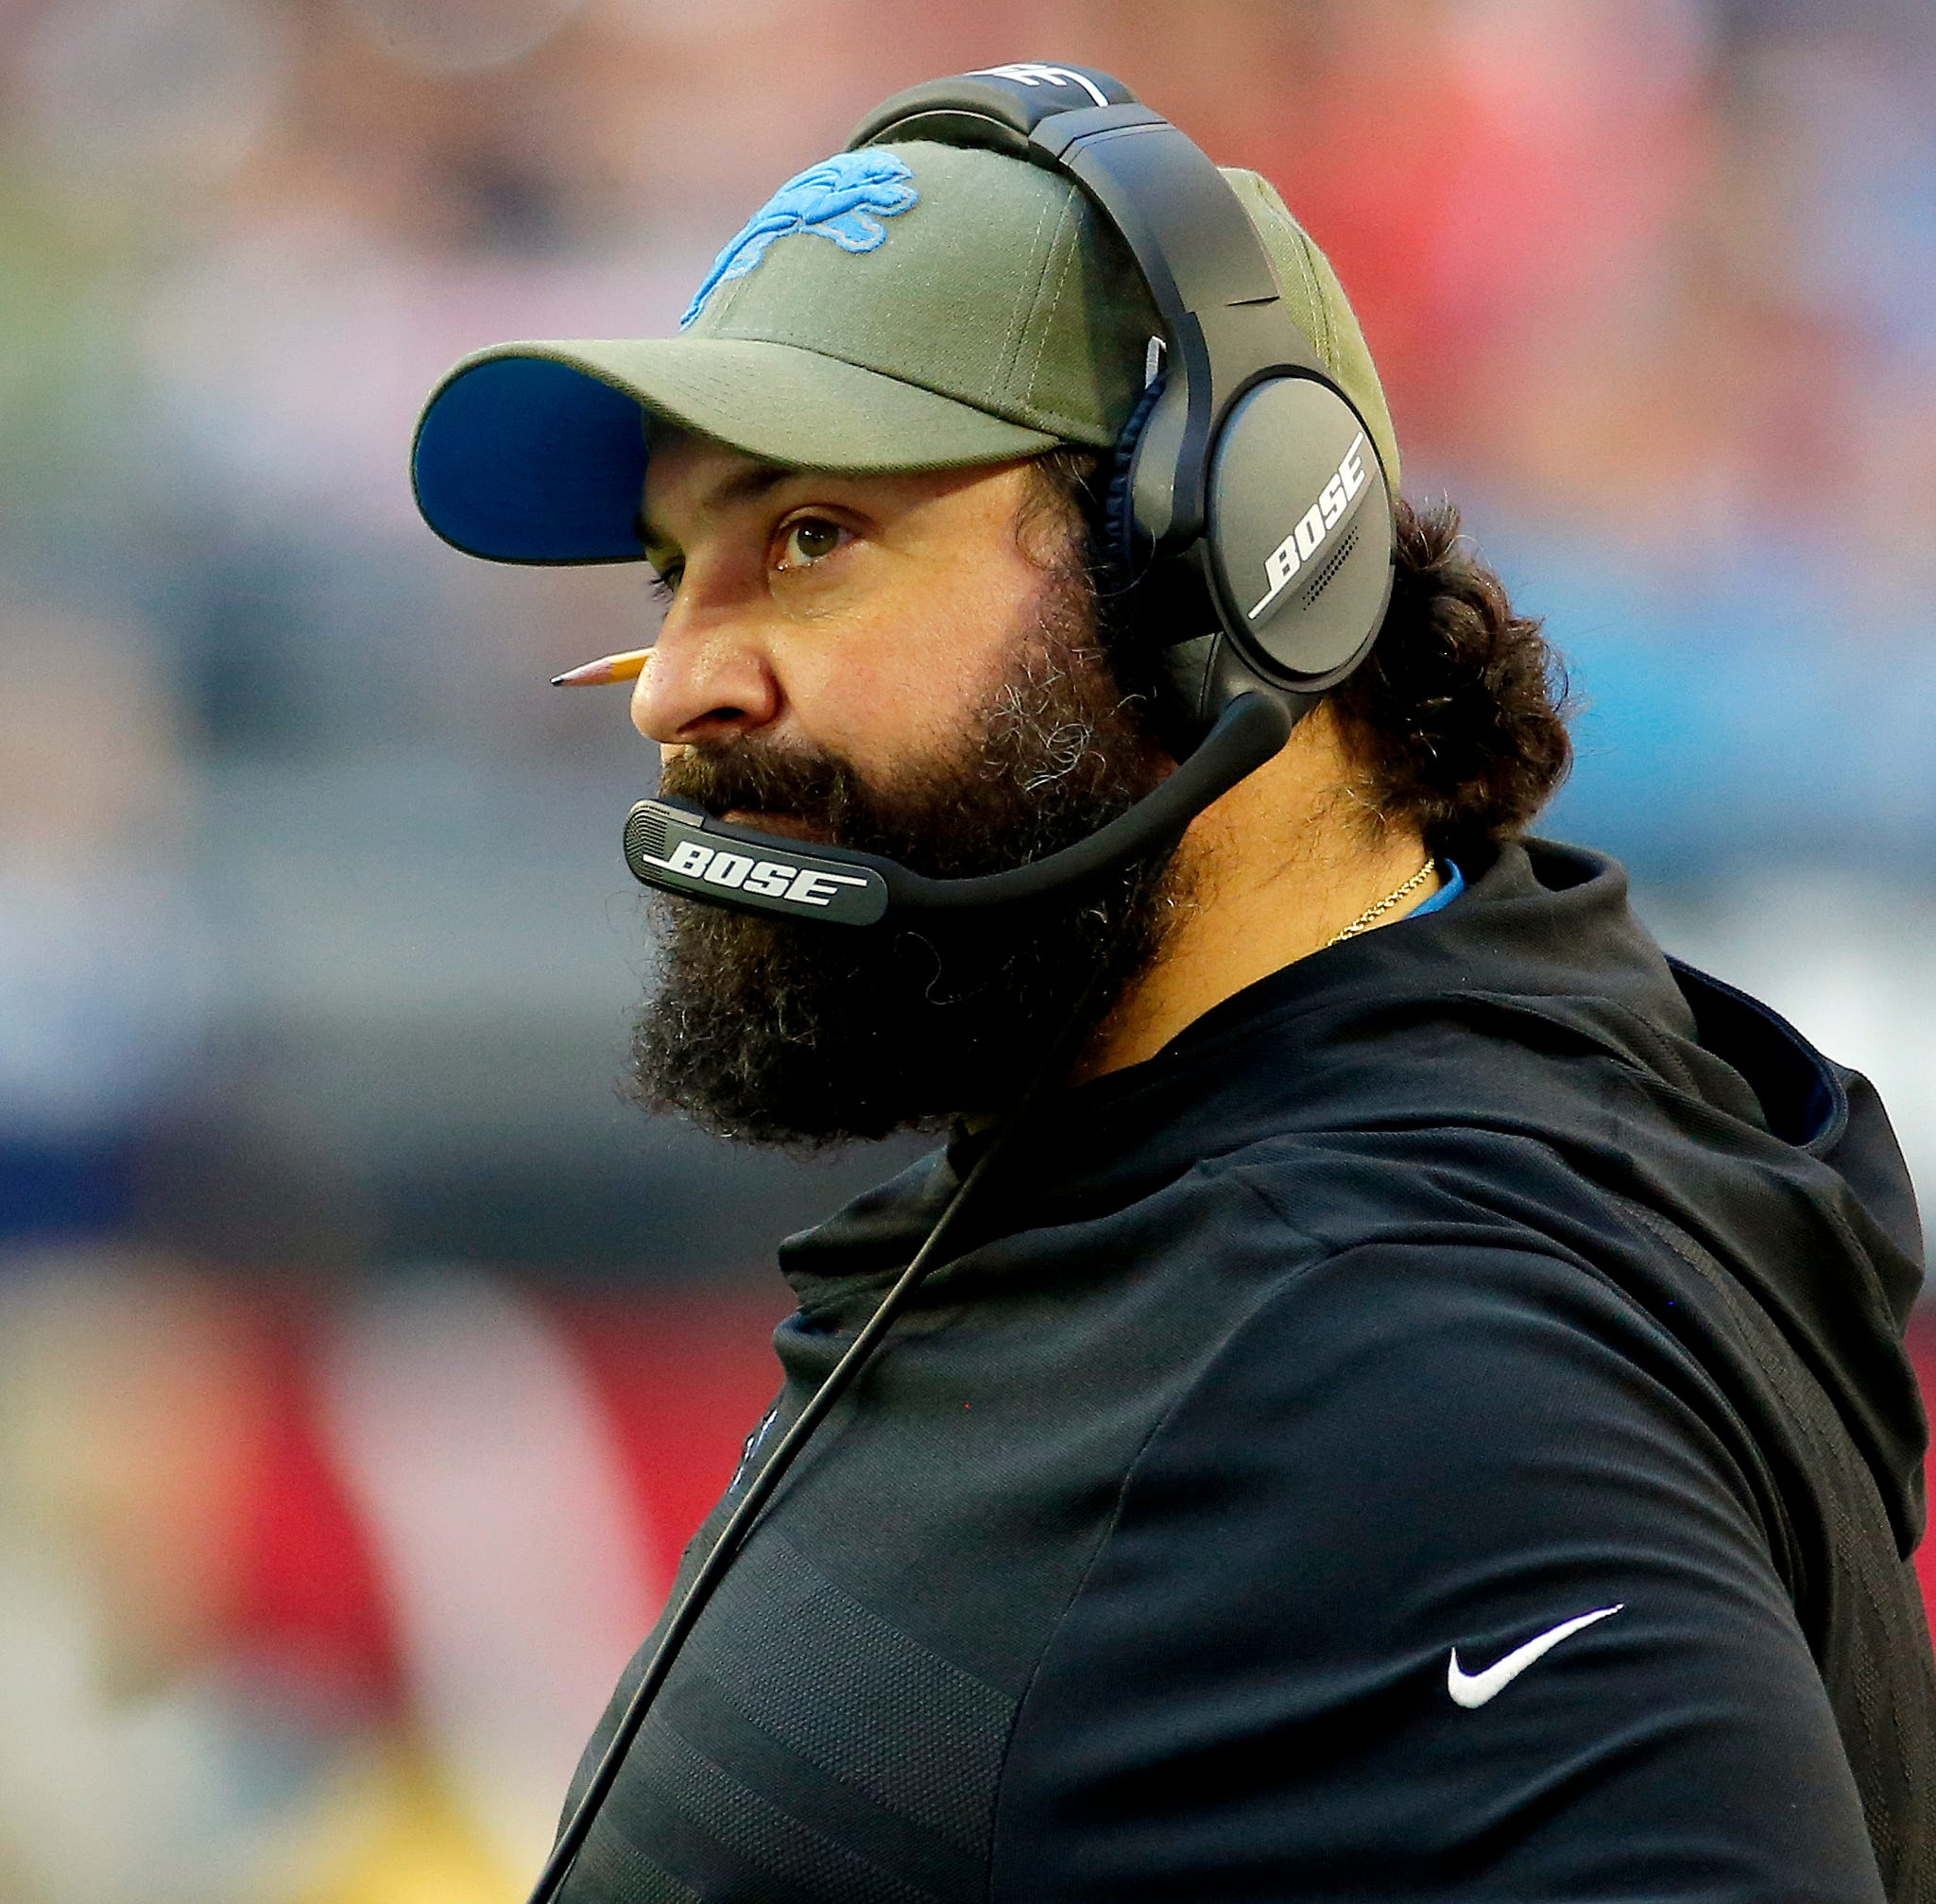 Detroit Lions vs. Buffalo Bills: Here's what Lions need to do to win